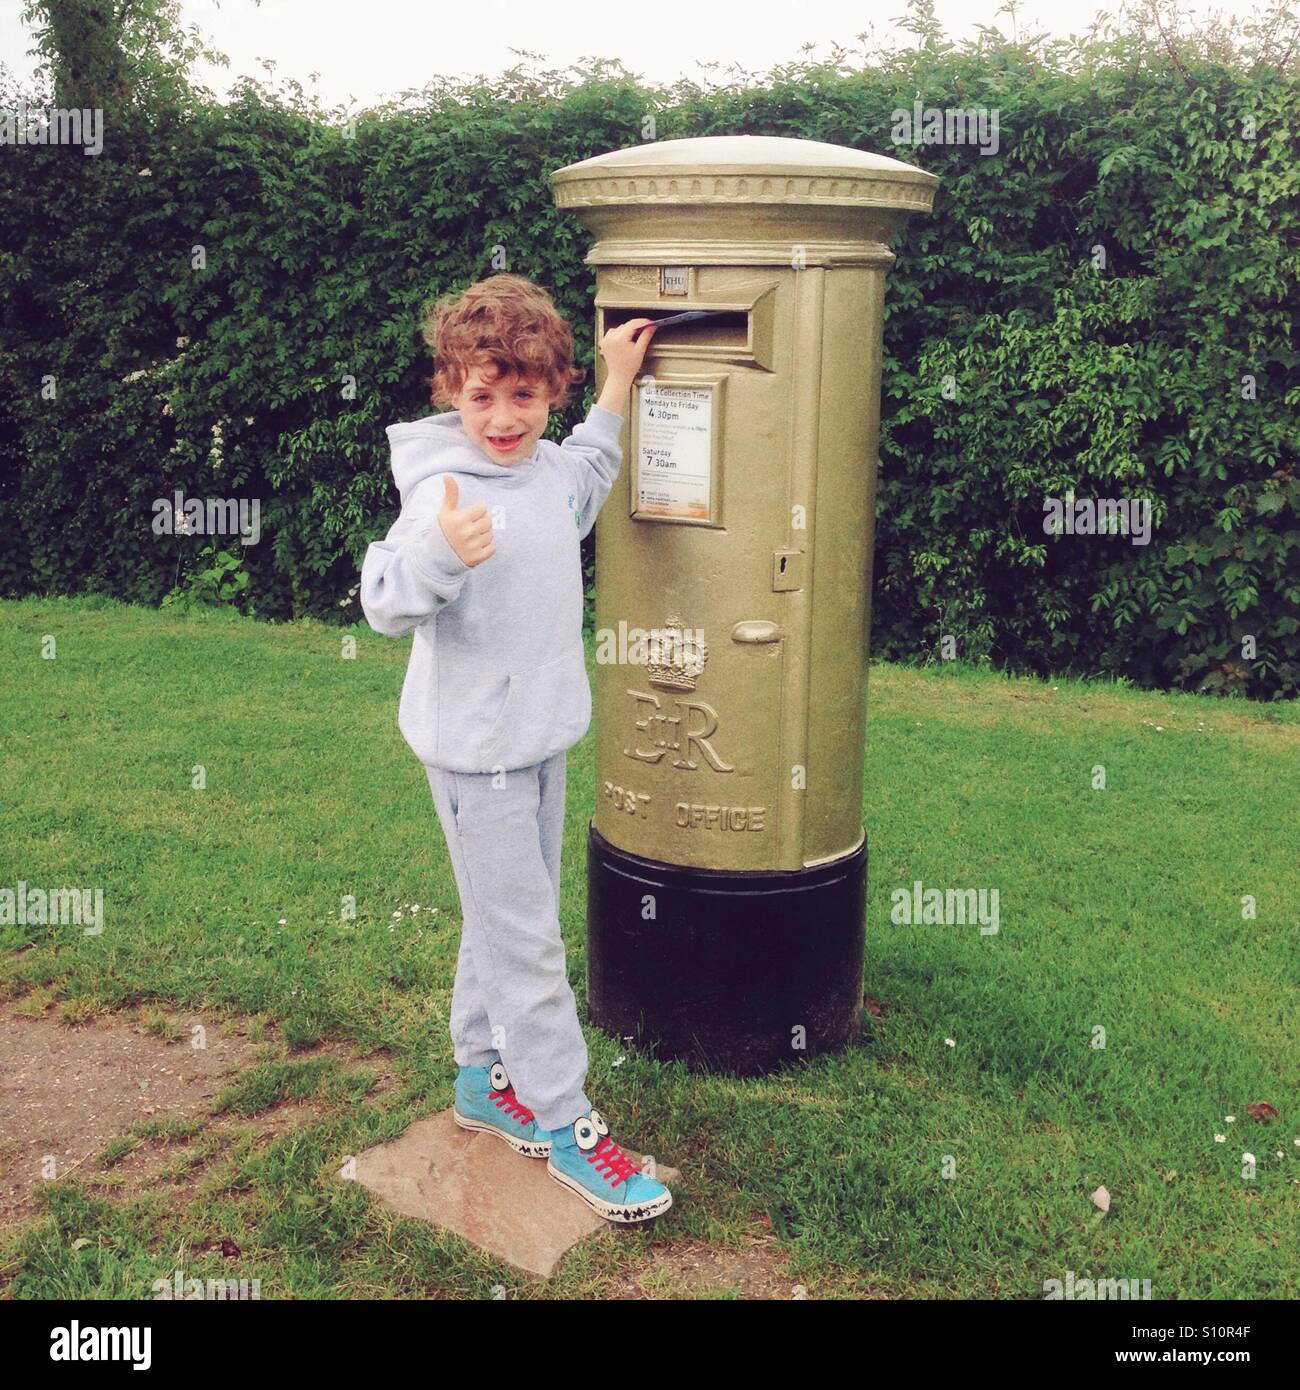 Seven year old boy posting a letter in a gold Olympic postbox, Bentworth, Hampshire, England, United Kingdom. - Stock Image